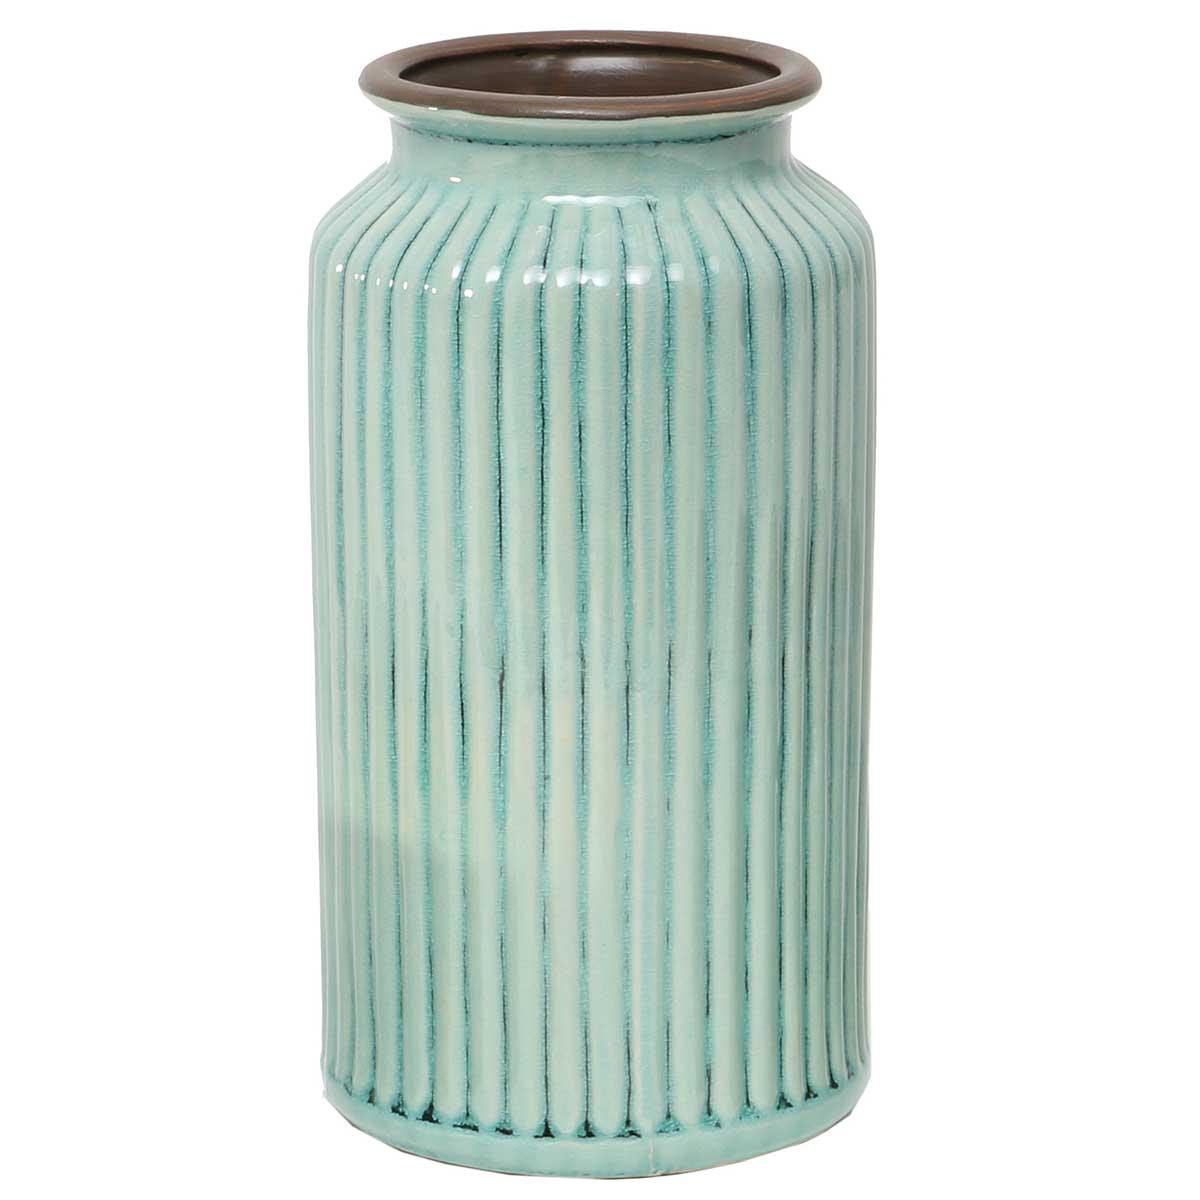 Teal Ribbed Vase 4.5�x10� A2087 TL